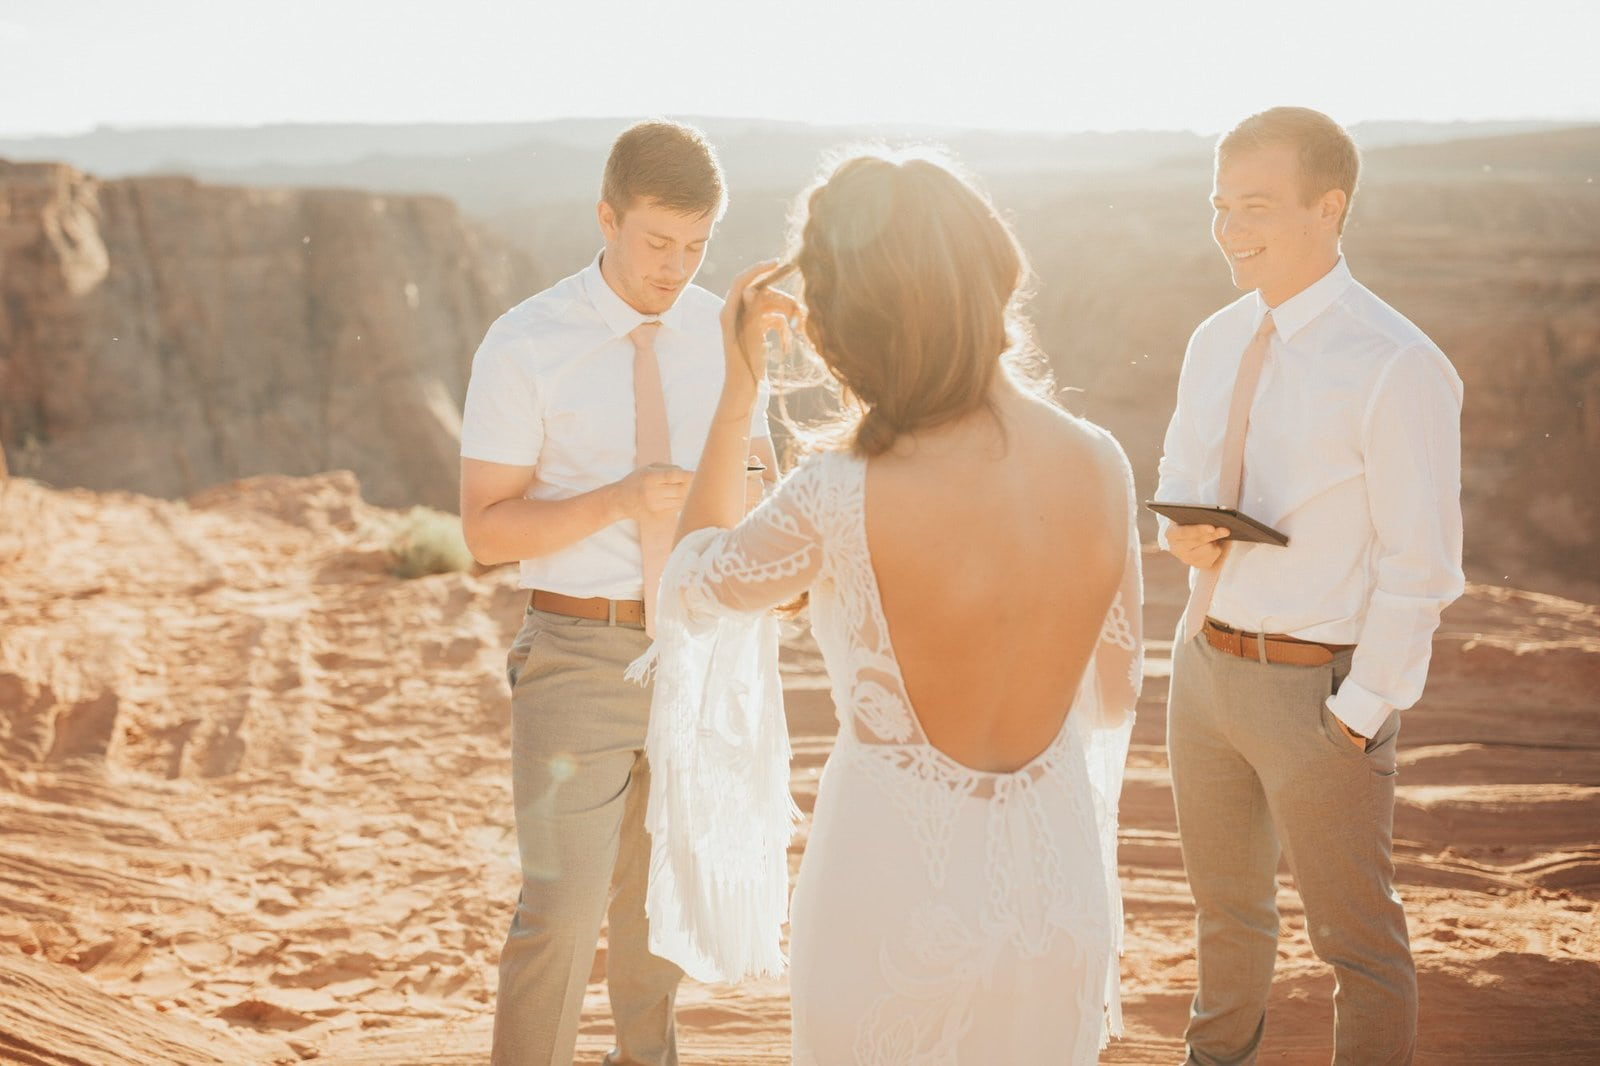 Groom exchanging vows for intimate elopement.